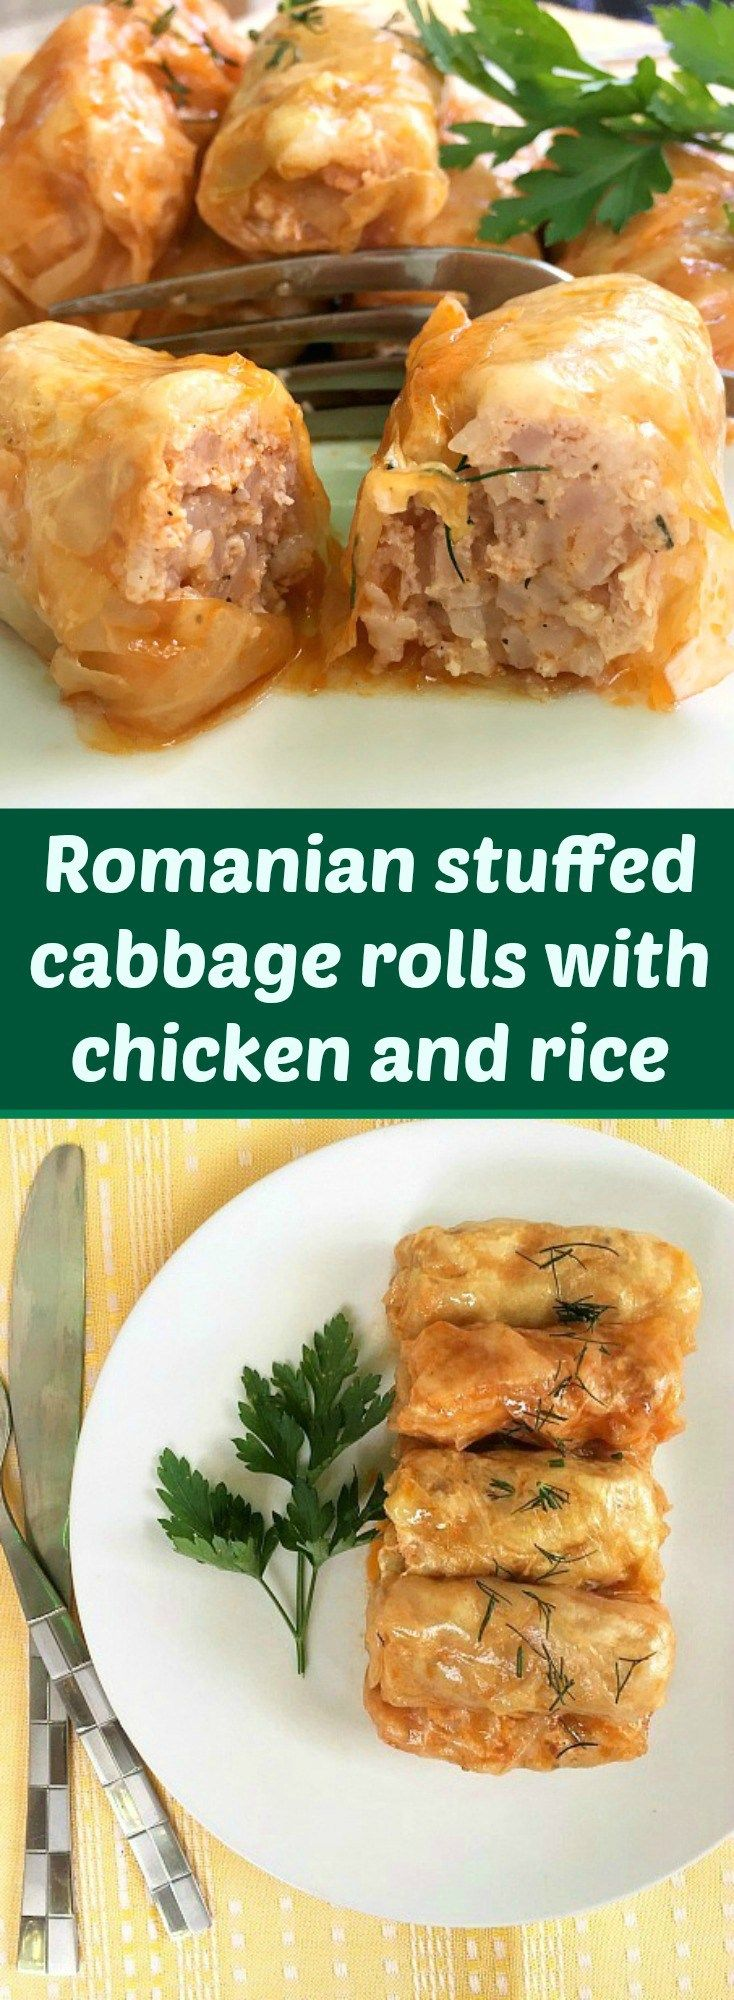 Romanian stuffed cabbage rolls with chicken and rice or sarmale, the country's national dish. Usually served with warm polenta, sour cream and green chilli peppers.